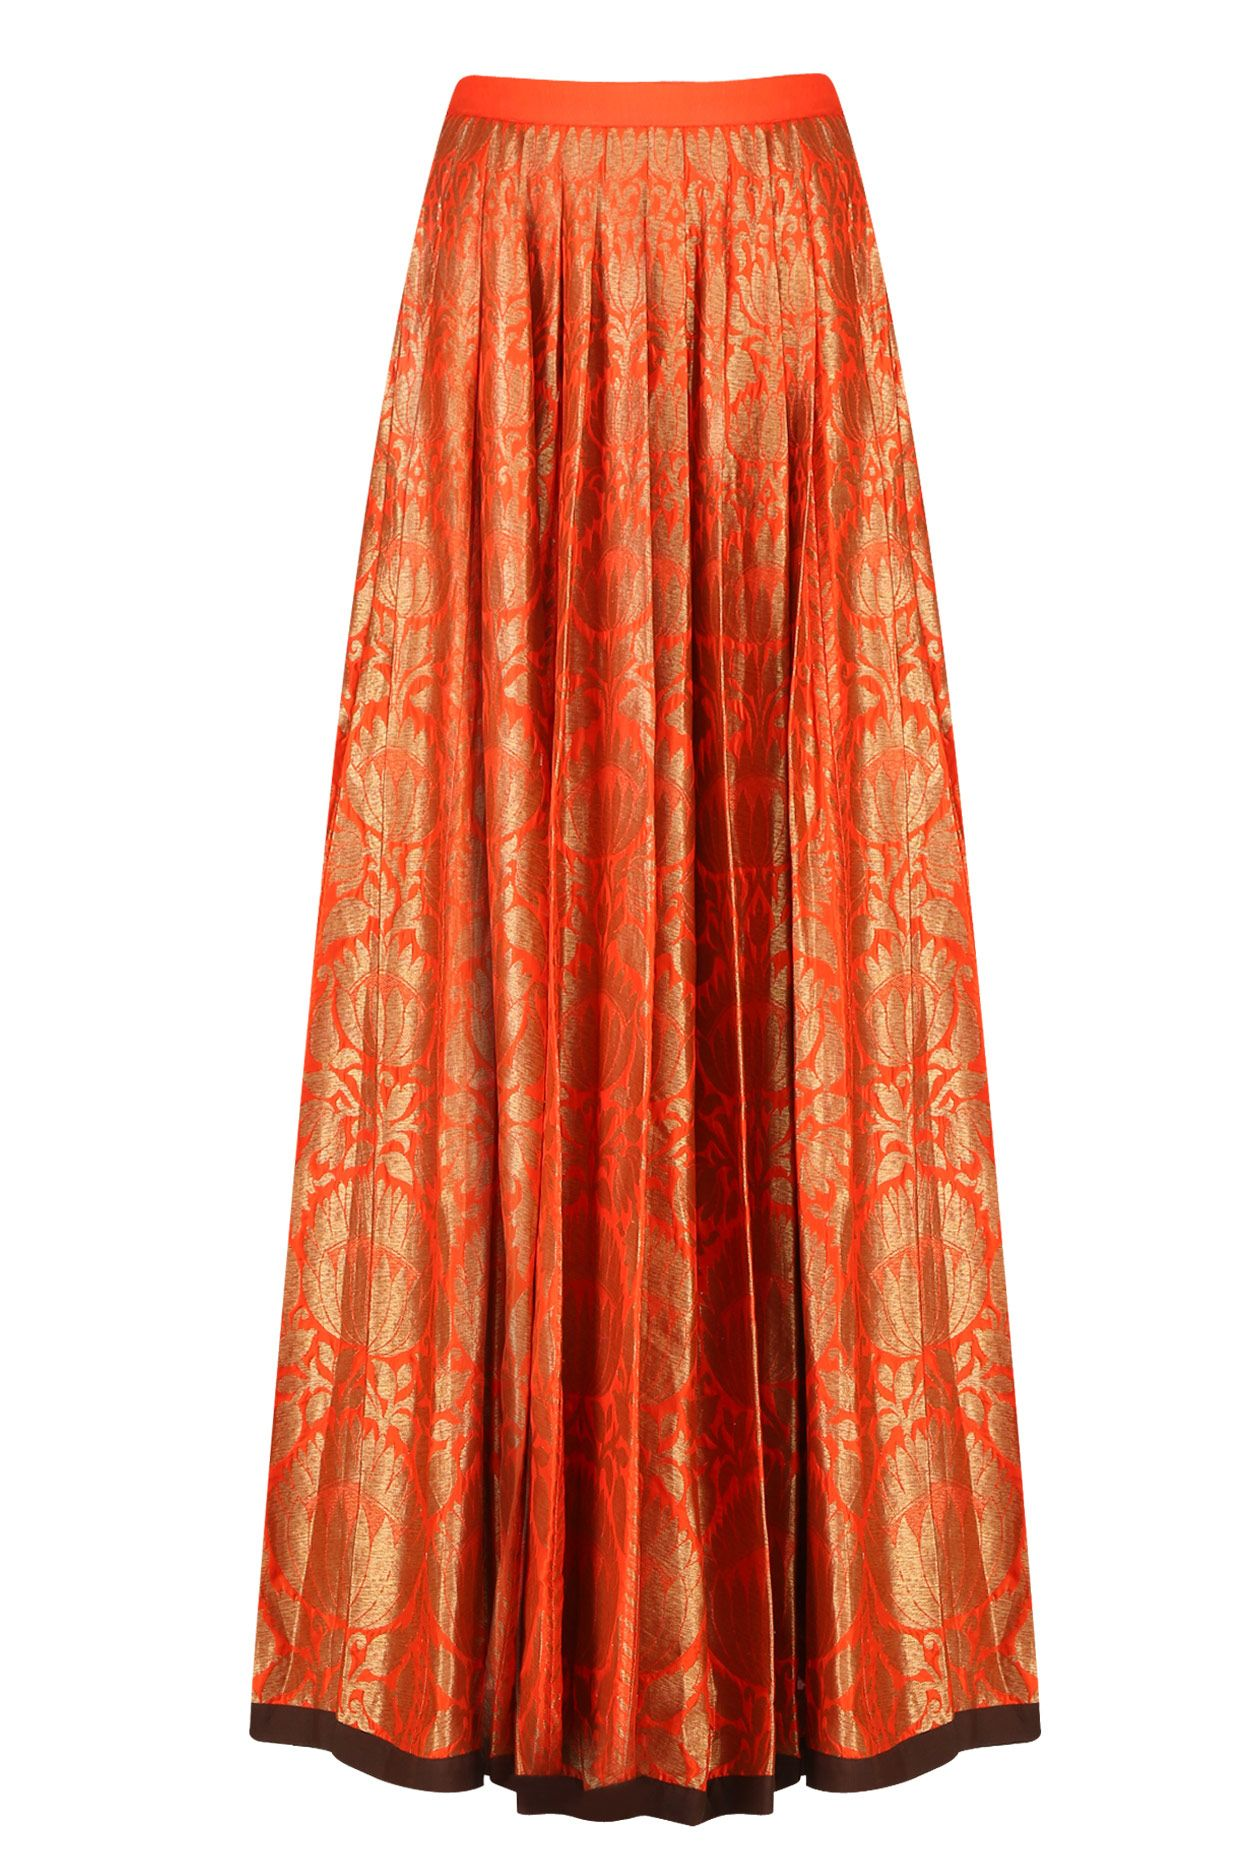 7a69acec75 Tangerine orange and gold brocade flared kalidaar lehenga skirt available  only at Pernia's Pop Up Shop.